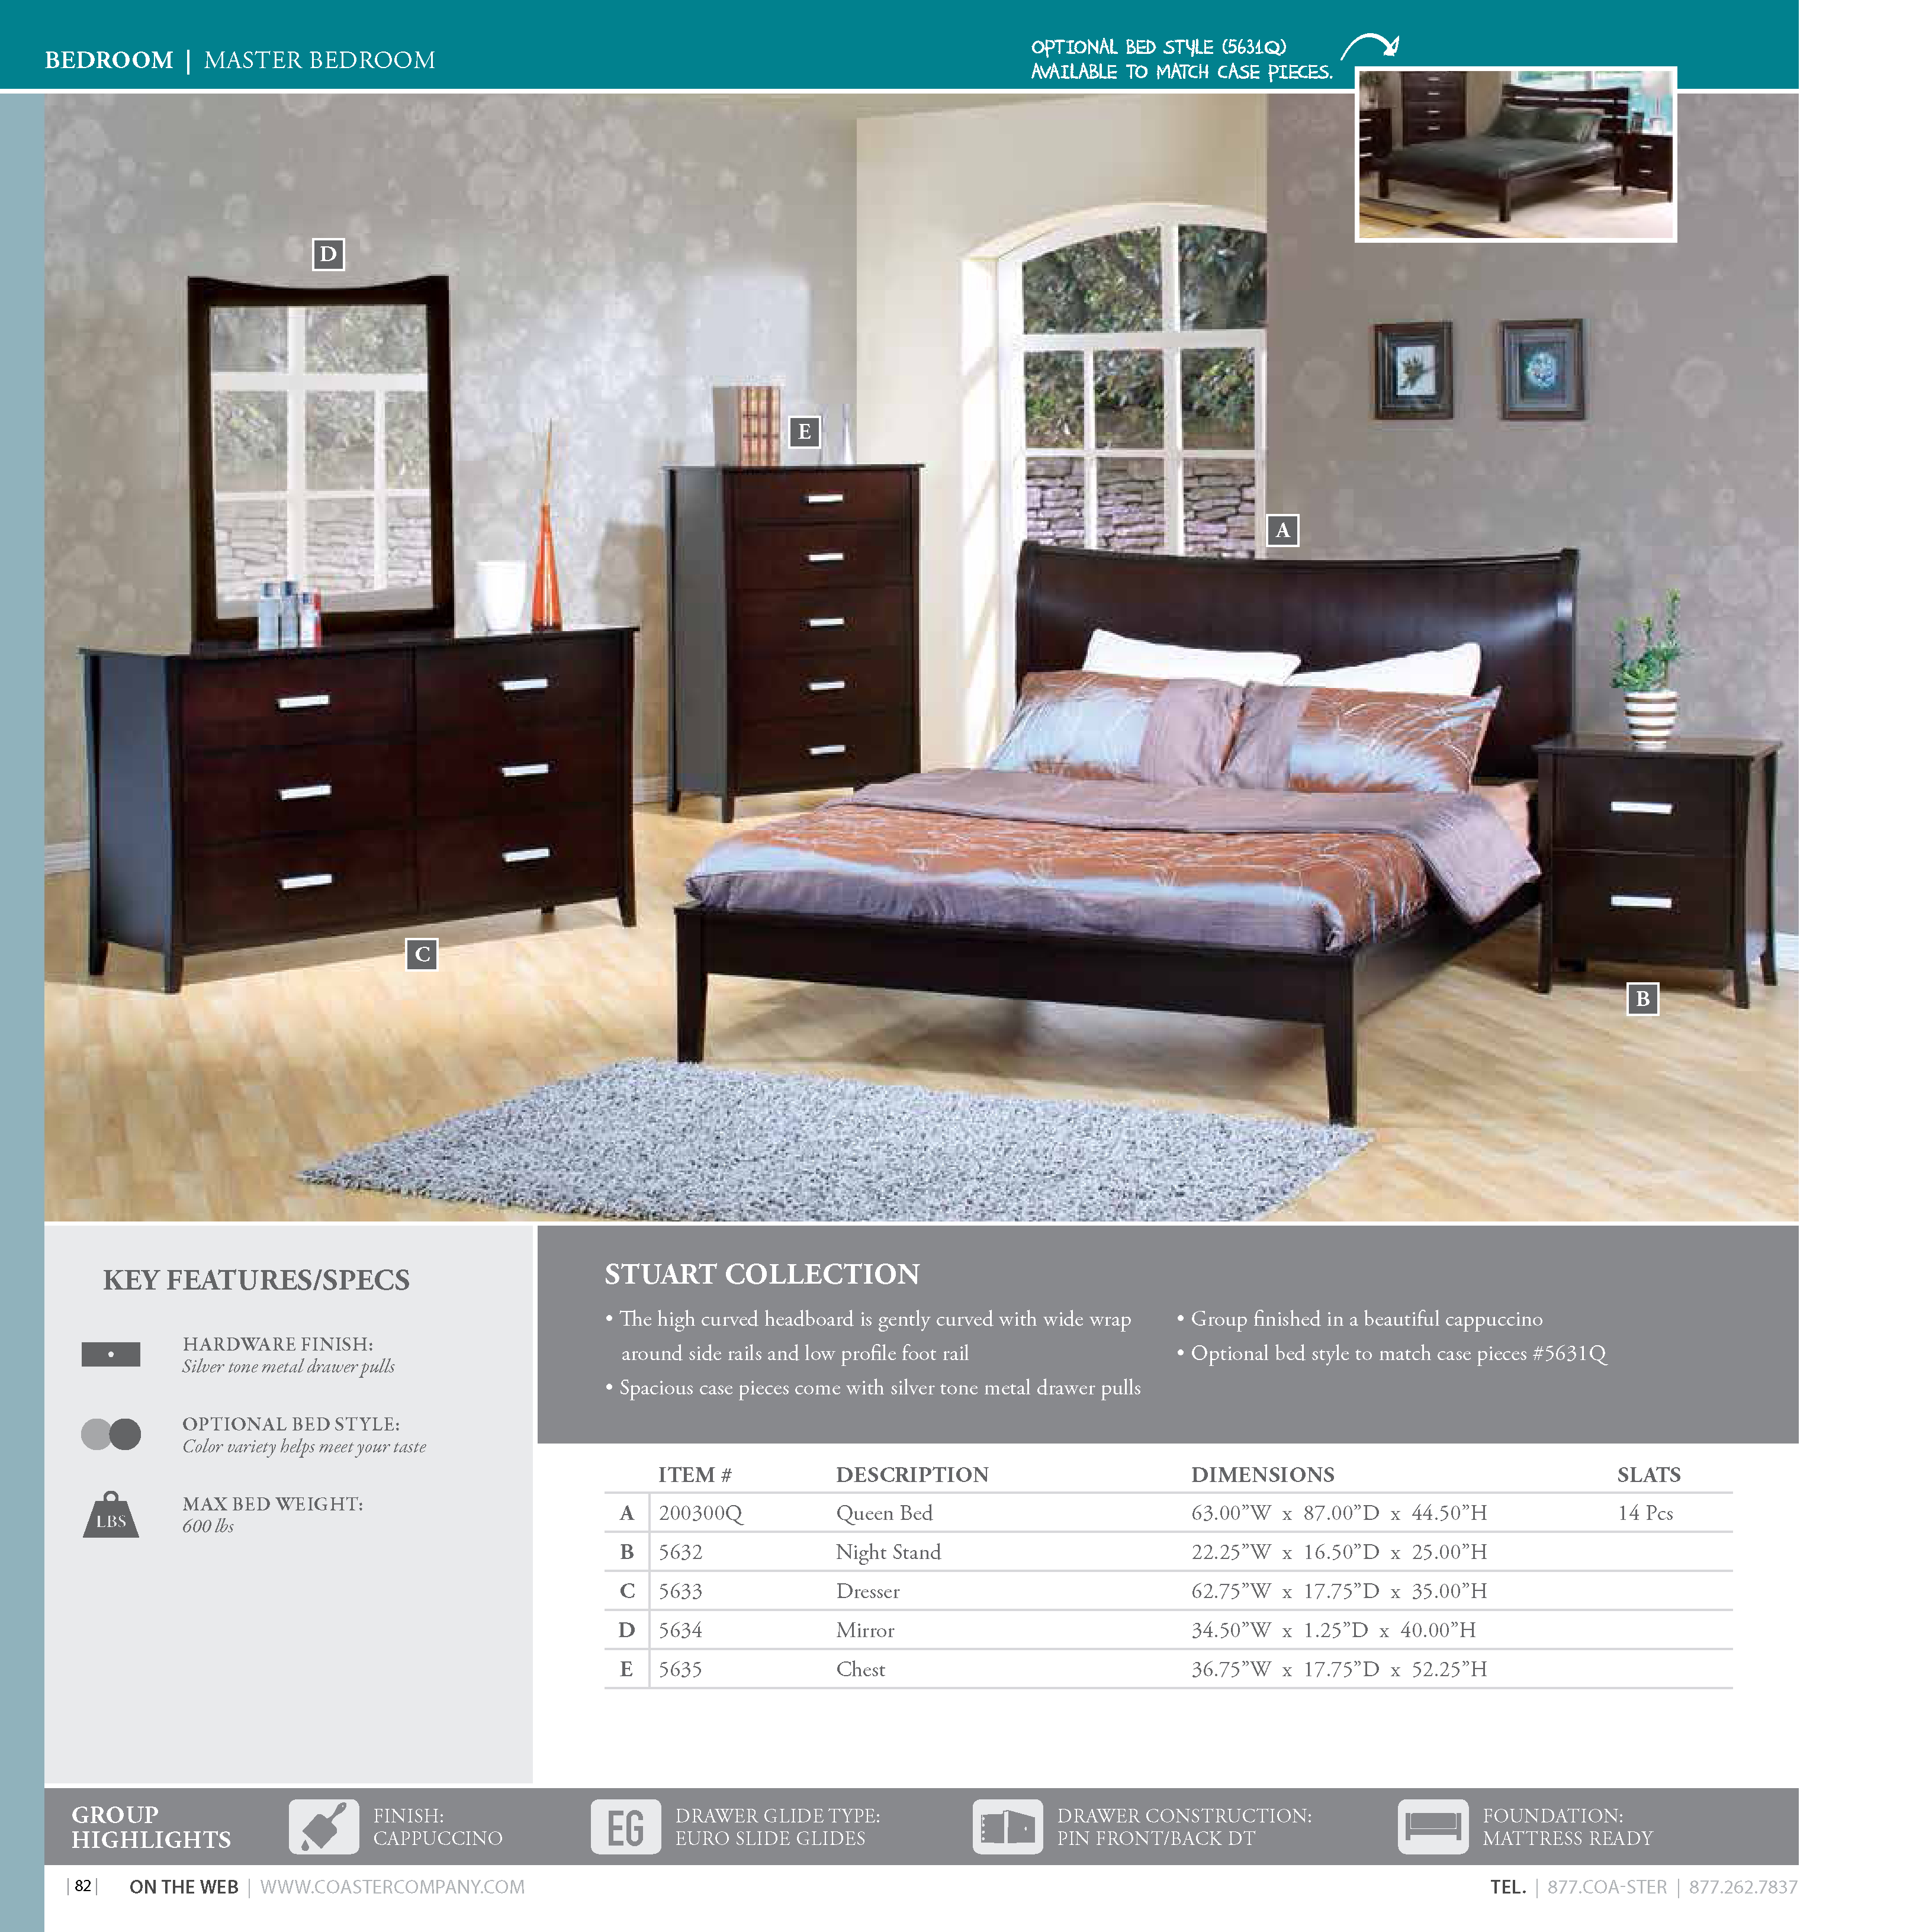 Coaster 2016 Bedroom Catalog | Lisys Discount Furniture